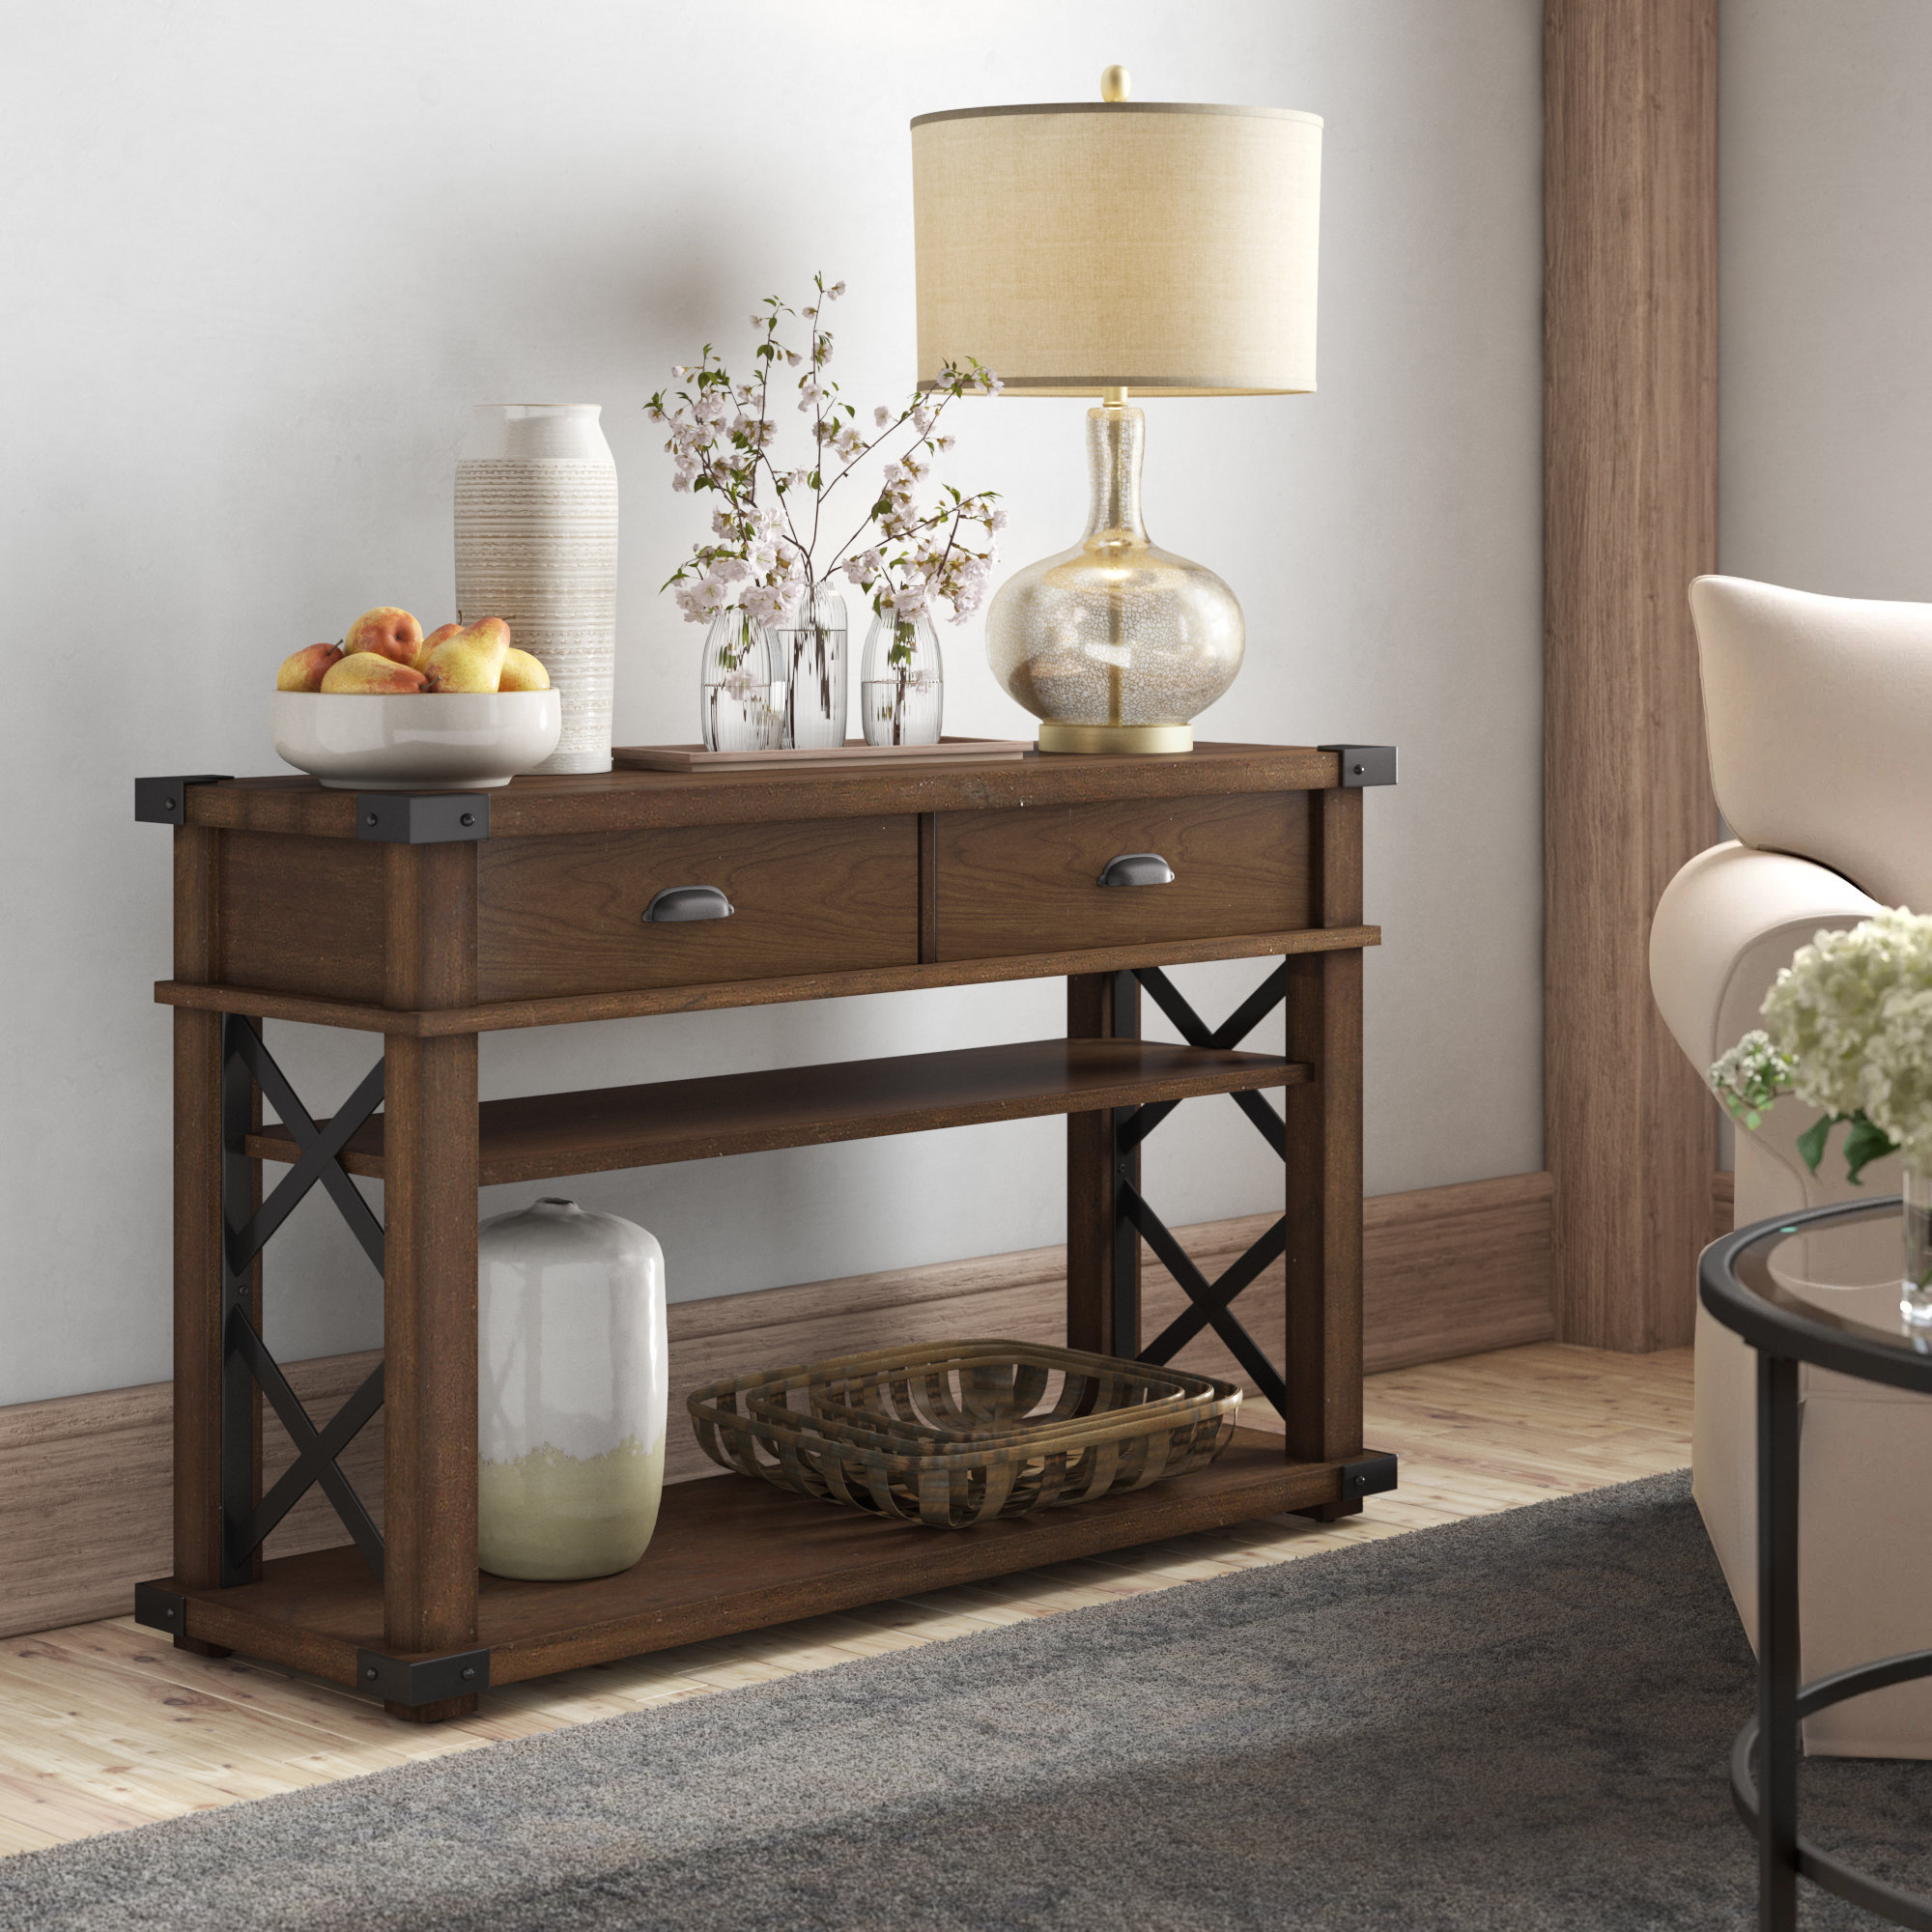 Small Corner Console Table | Wayfair Inside Layered Wood Small Square Console Tables (View 13 of 20)